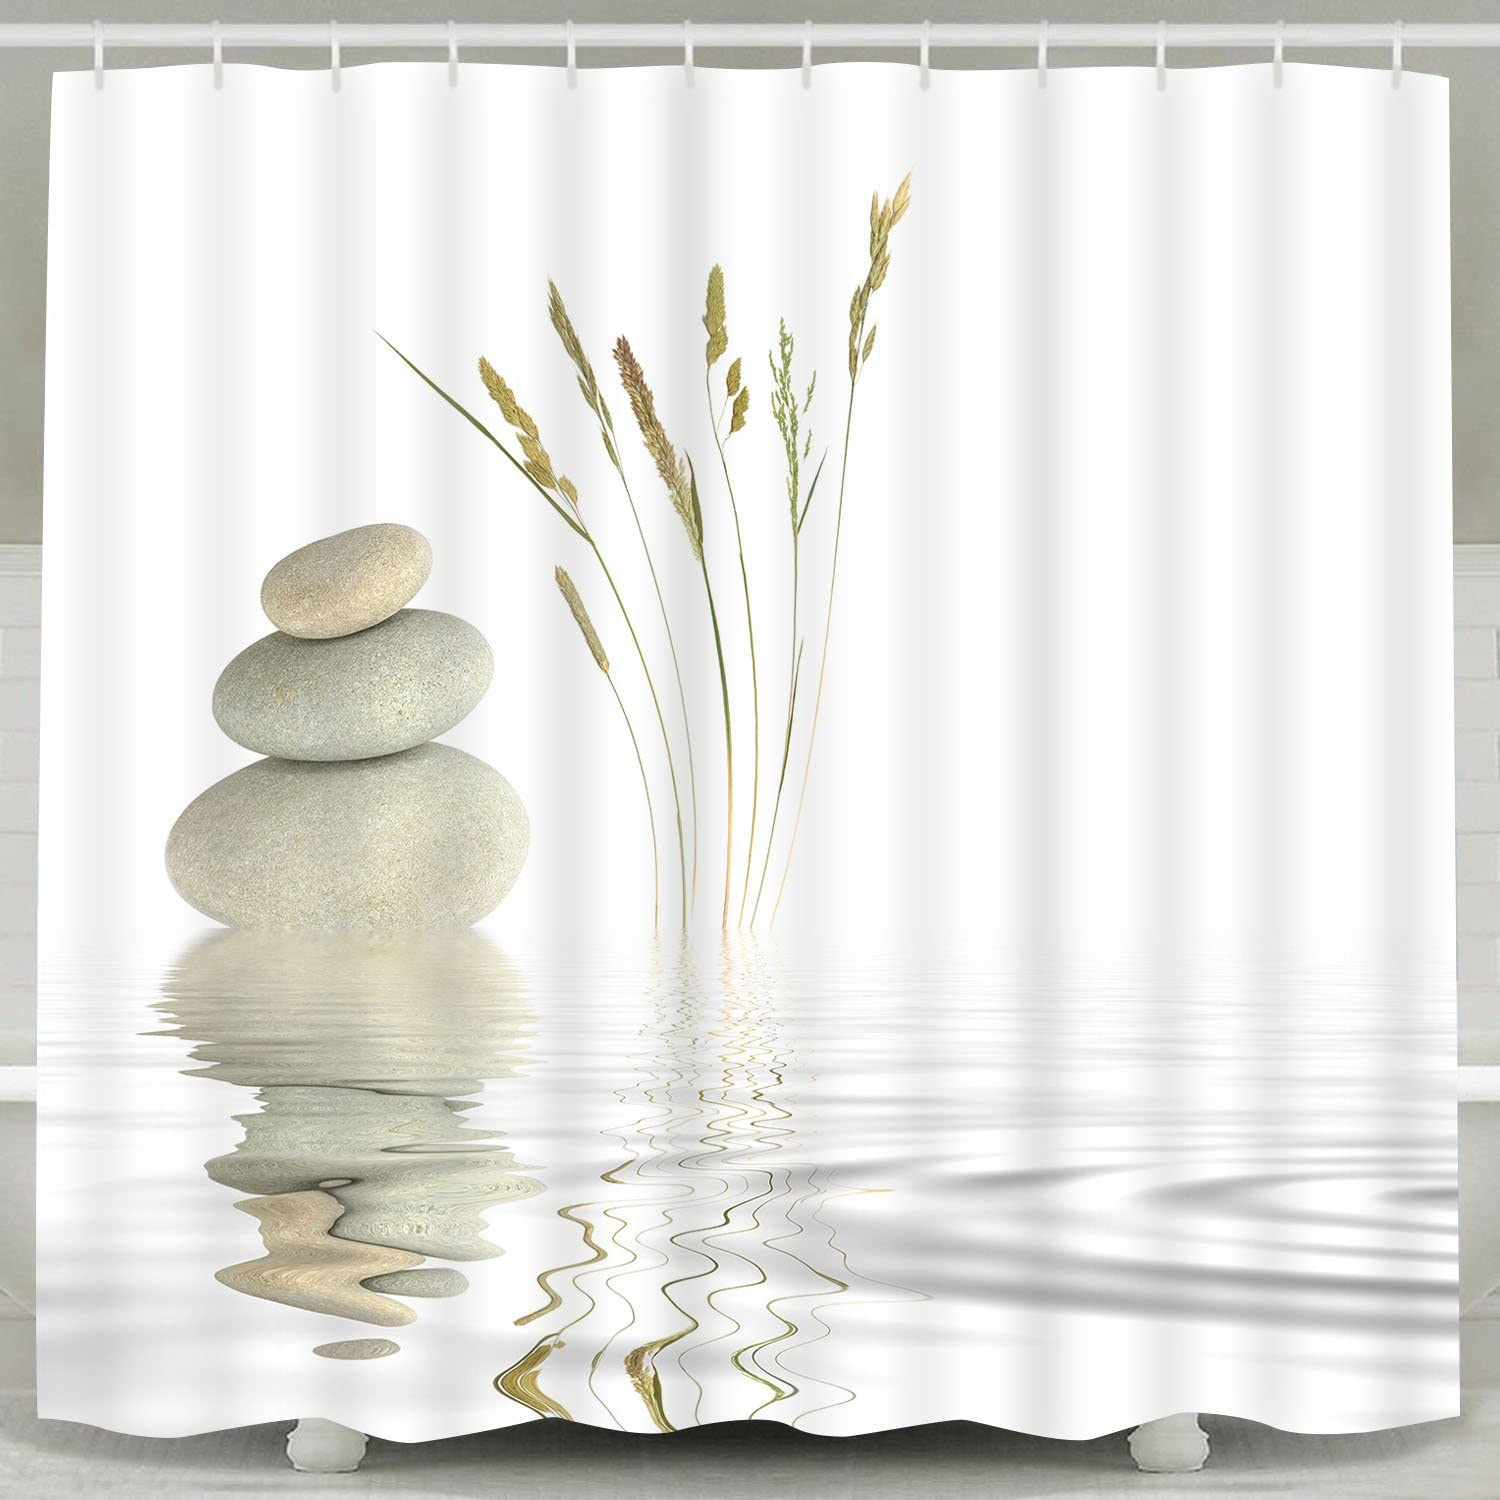 Waterpoof Fabric Spa Water Lily Zen Stone Serenity Pool Bathroom Shower Curtain